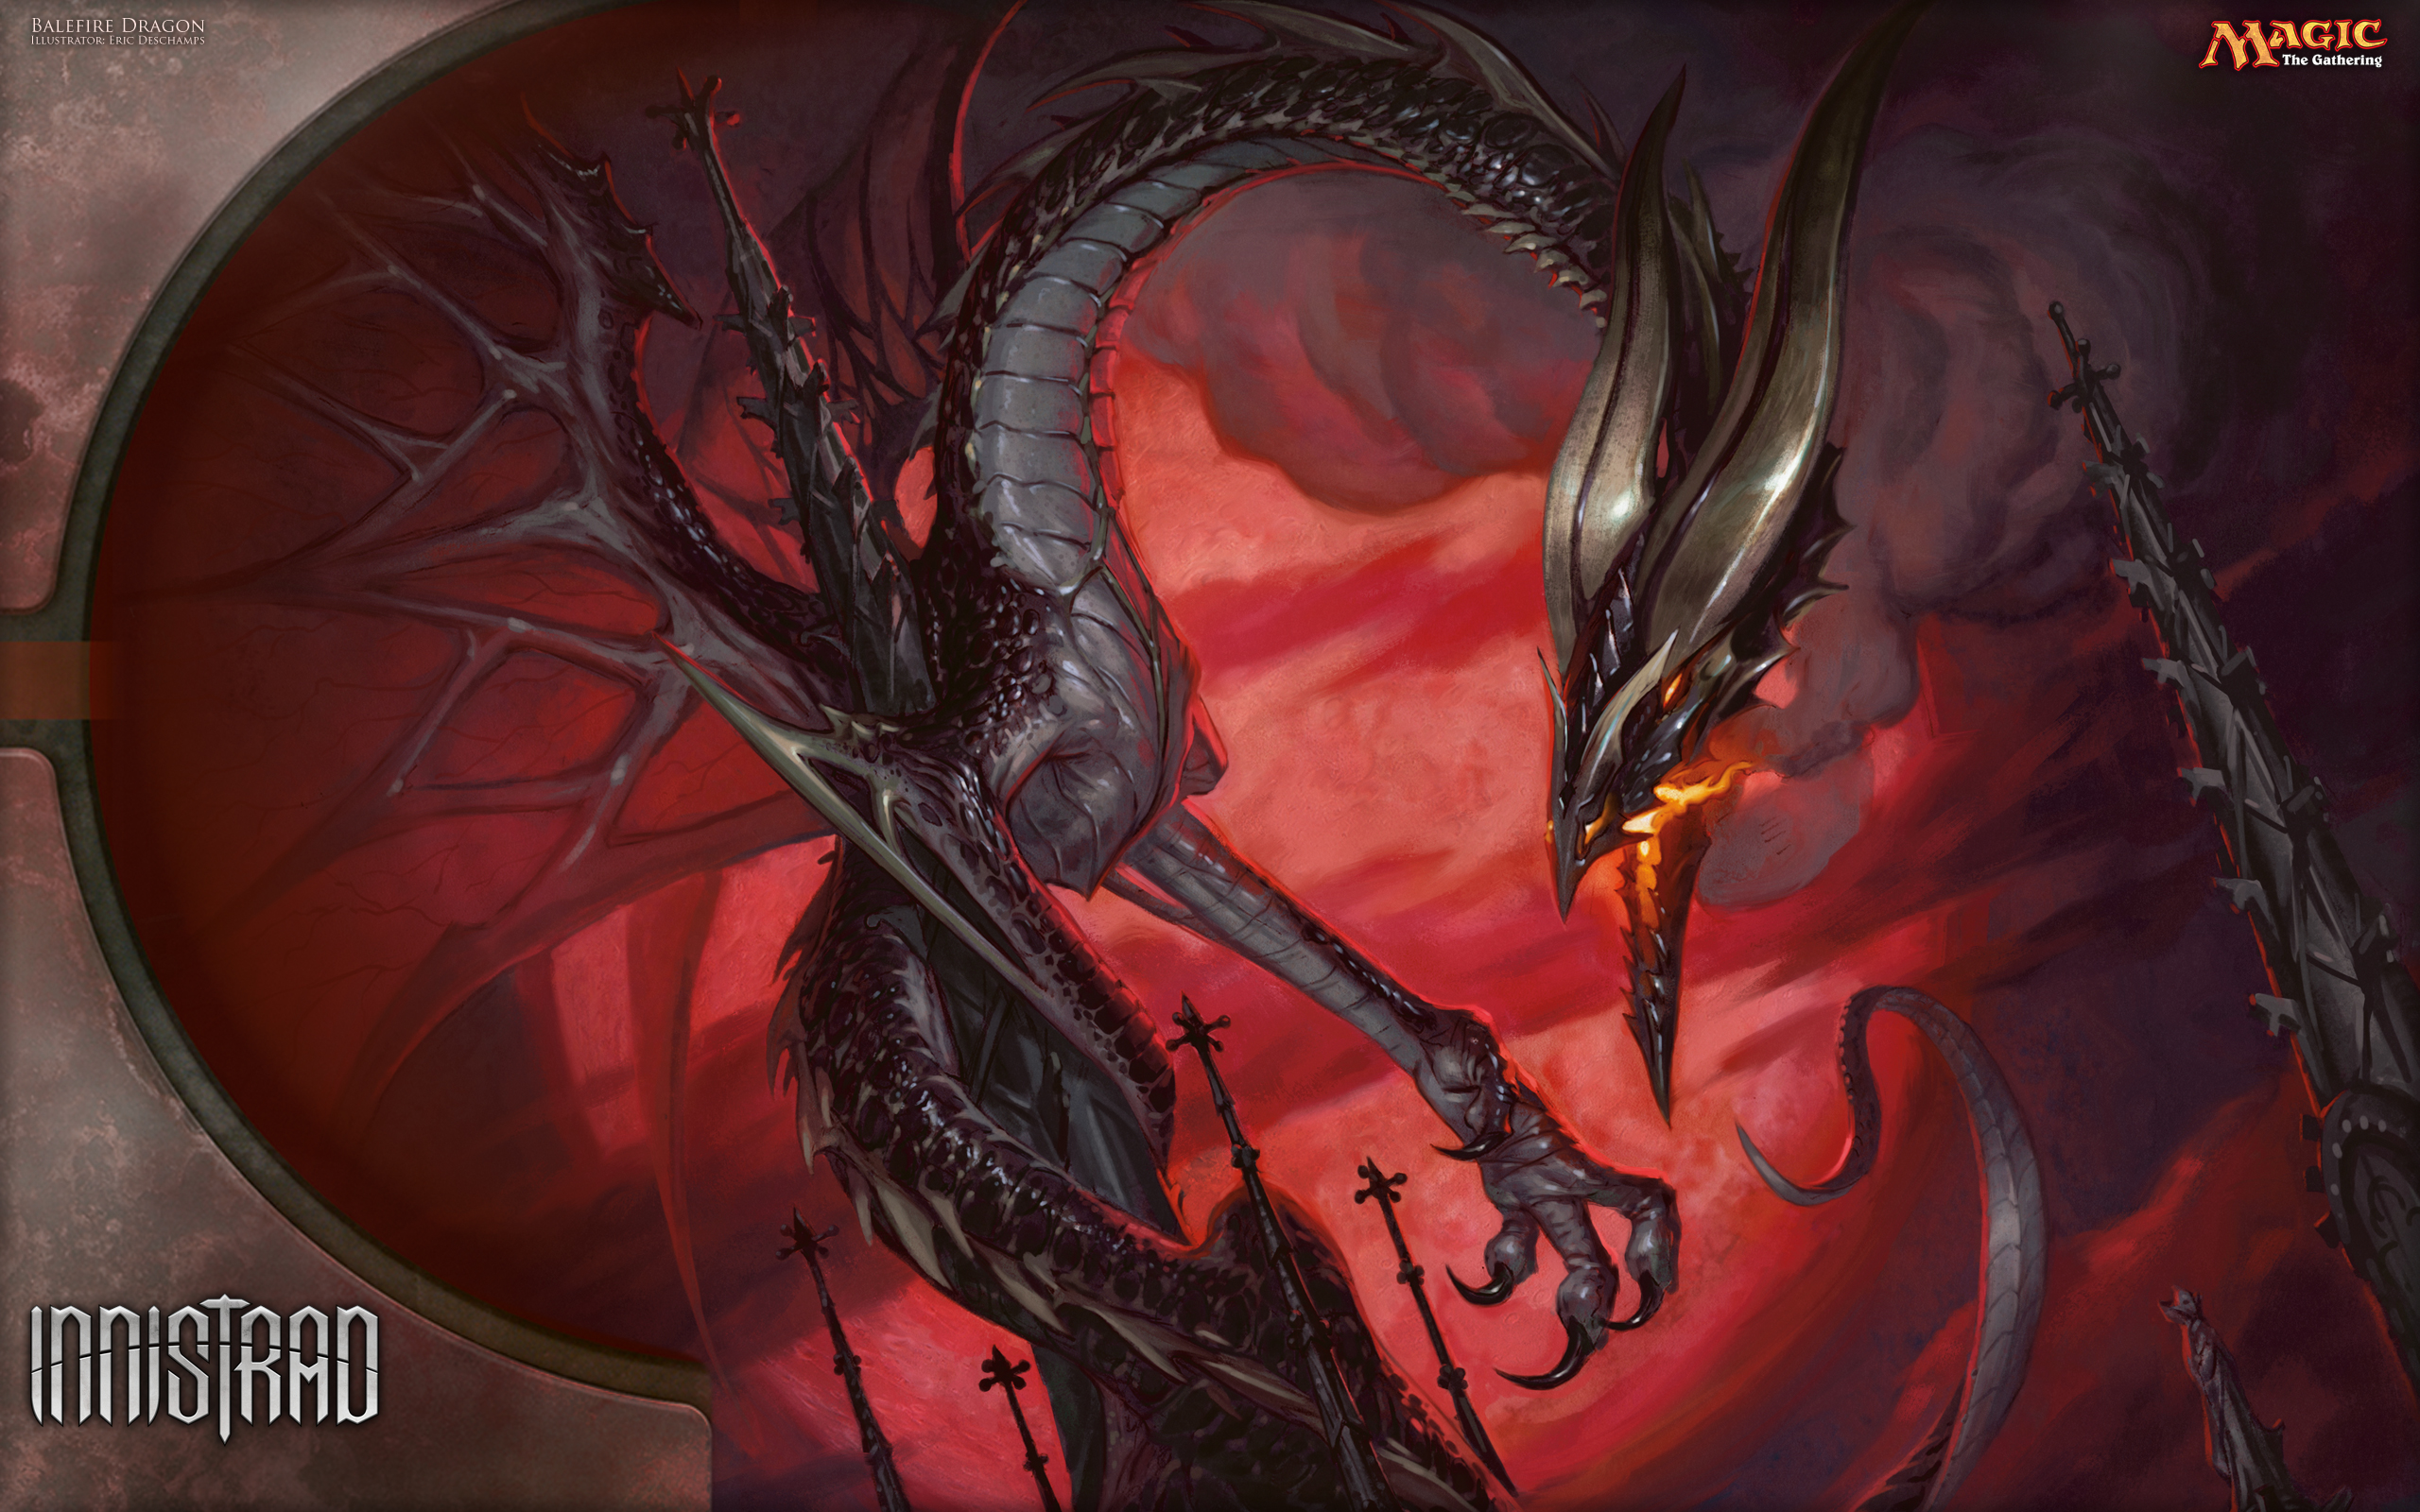 Wallpaper Of The Week Balefire Dragon Magic The Gathering